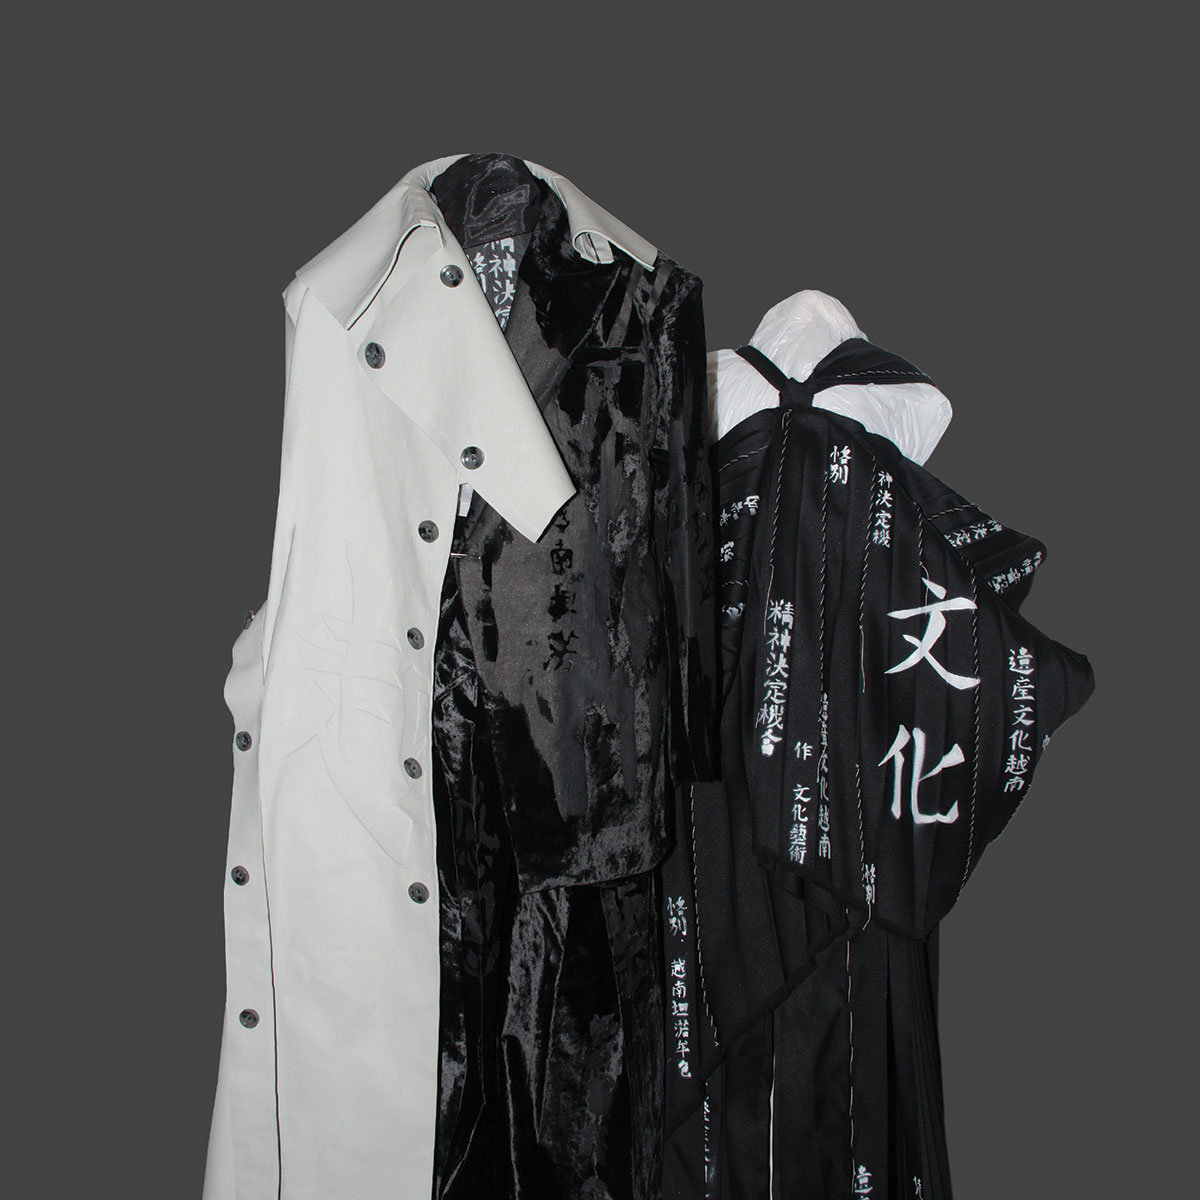 Trompe l'oeil latex trench coat with burn-out velvet suit and drape pleated top.